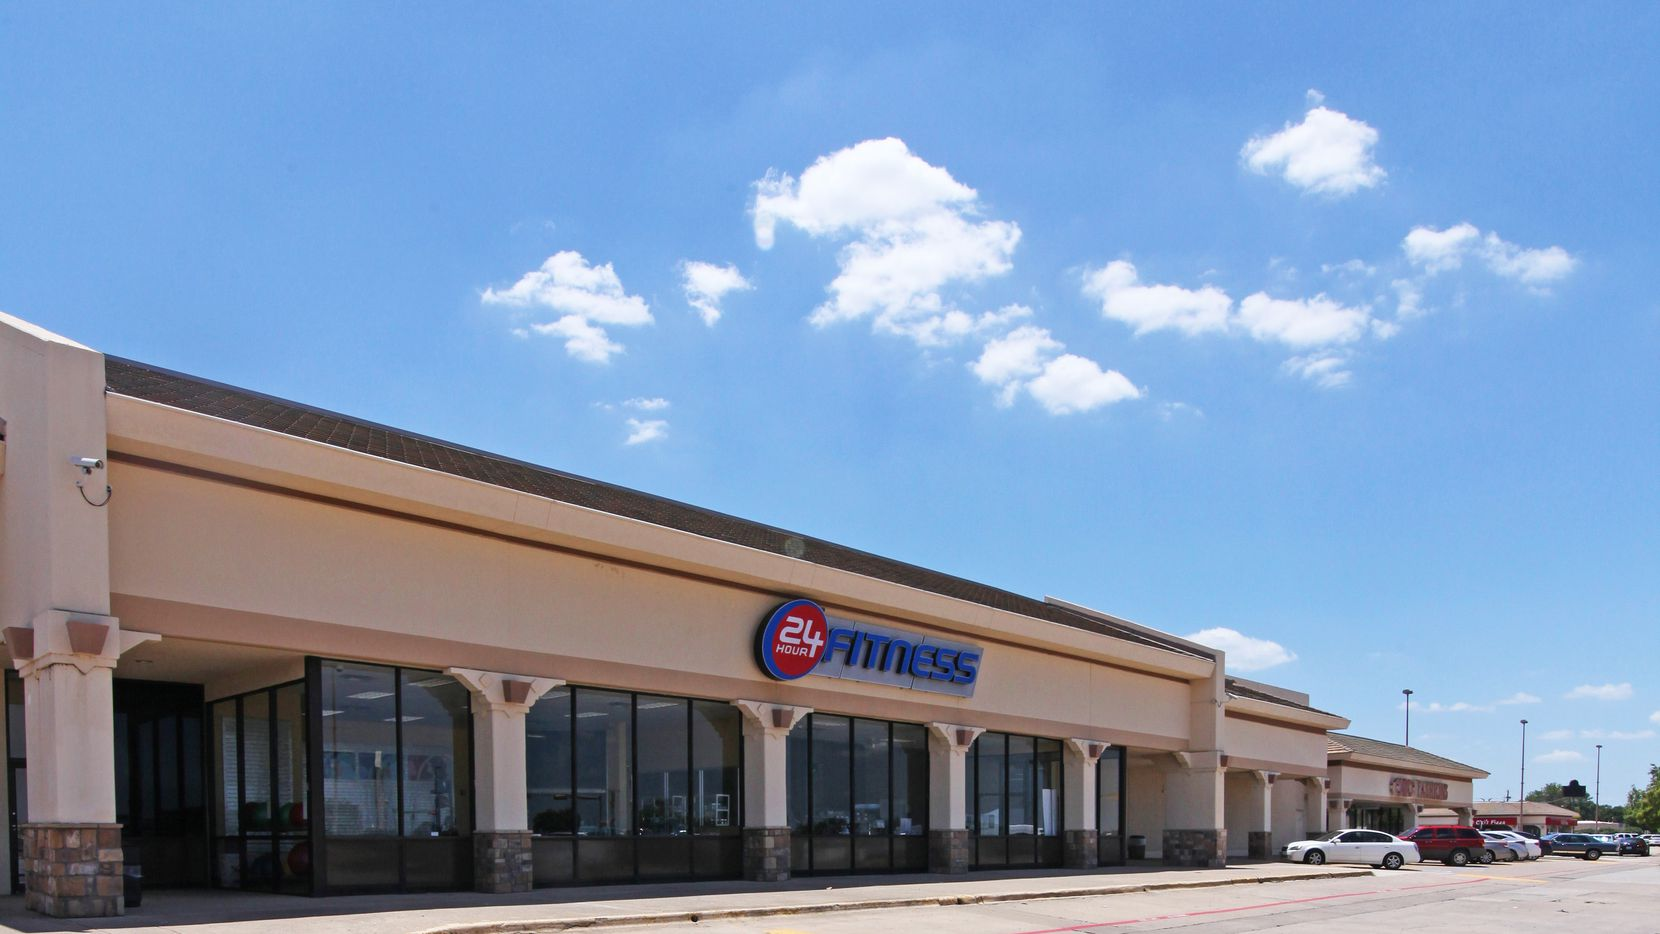 The Valley Square shopping center in Lewisville sold.